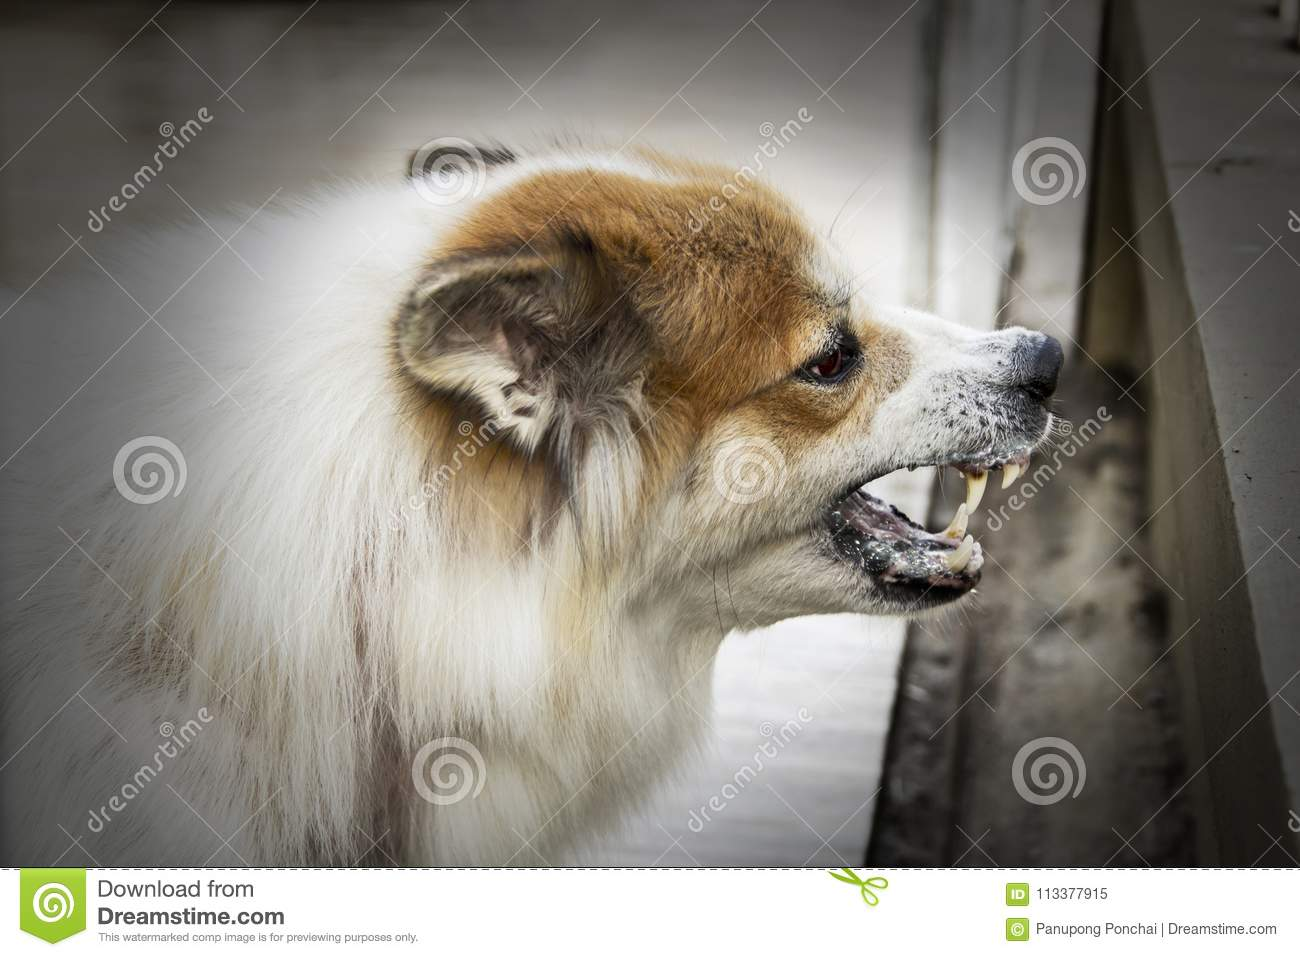 Dog crazy threaten show fangs have drooling. is a symptom of rabies.